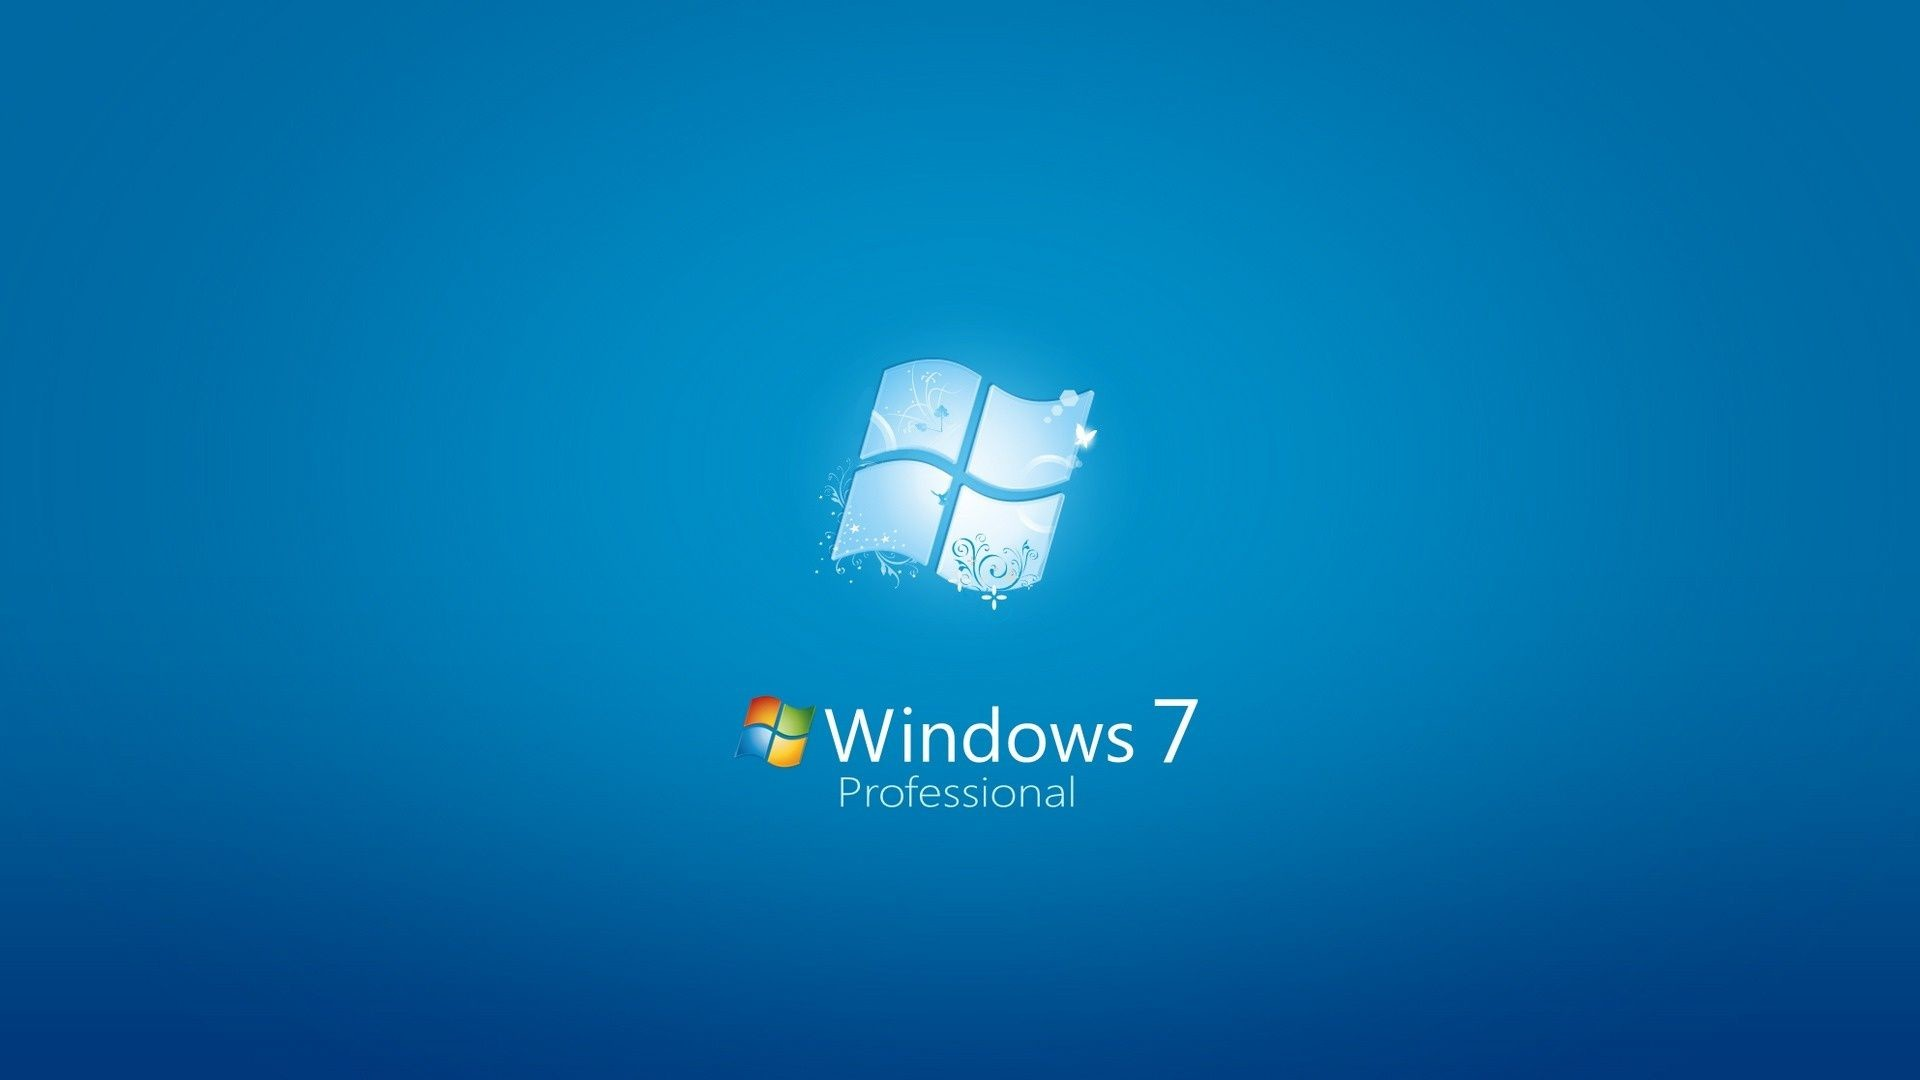 Windows 7 Ultimate Wallpapers HD 61 images 1920x1080